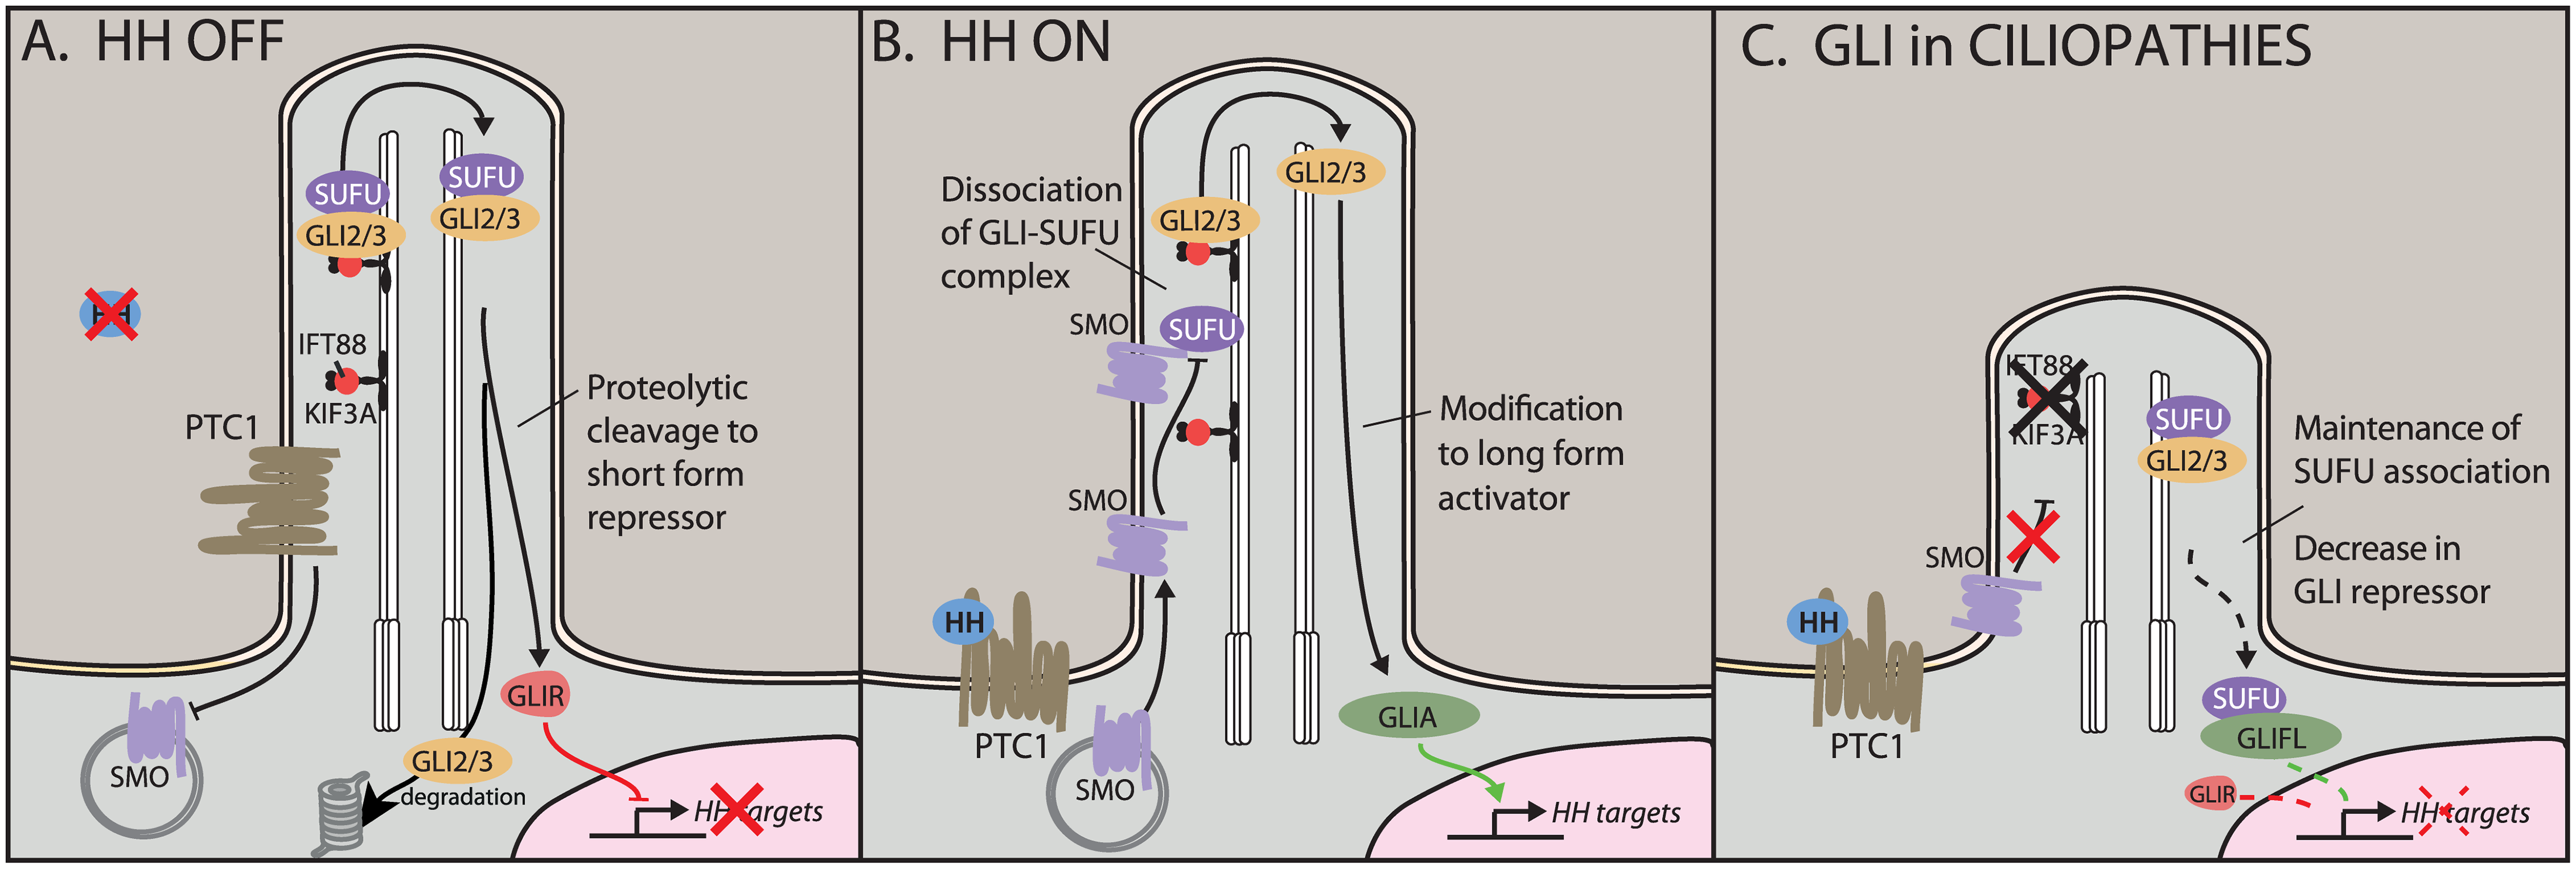 Hedgehog (HH) signaling in the cilium.